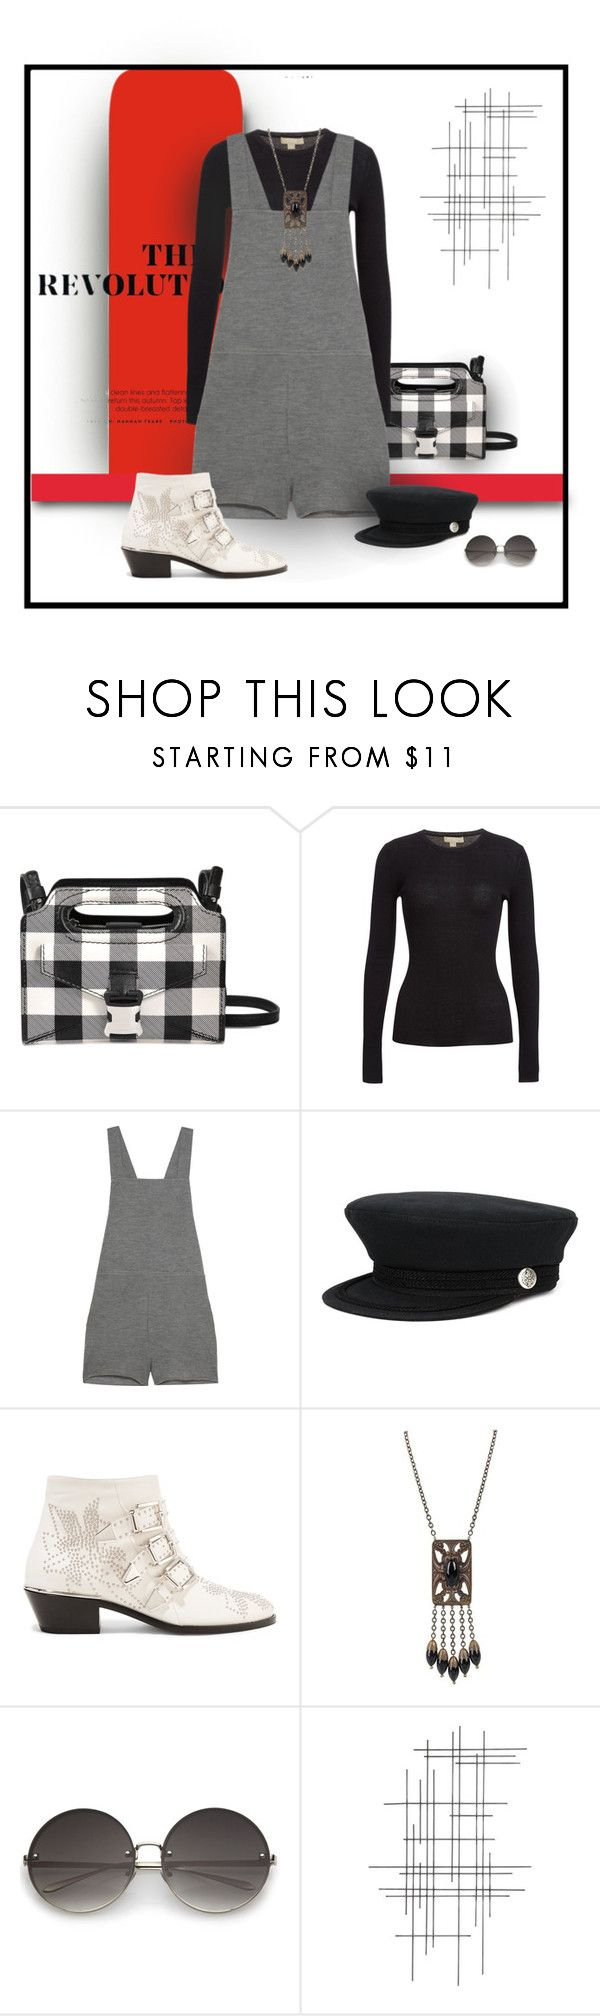 """Stud-Muffin"" by michelletheaflack ❤ liked on Polyvore featuring Christopher Kane, Michael Kors, The Elder Statesman, Valas, Chloé, Crate and Barrel, chloe and styleinsider"